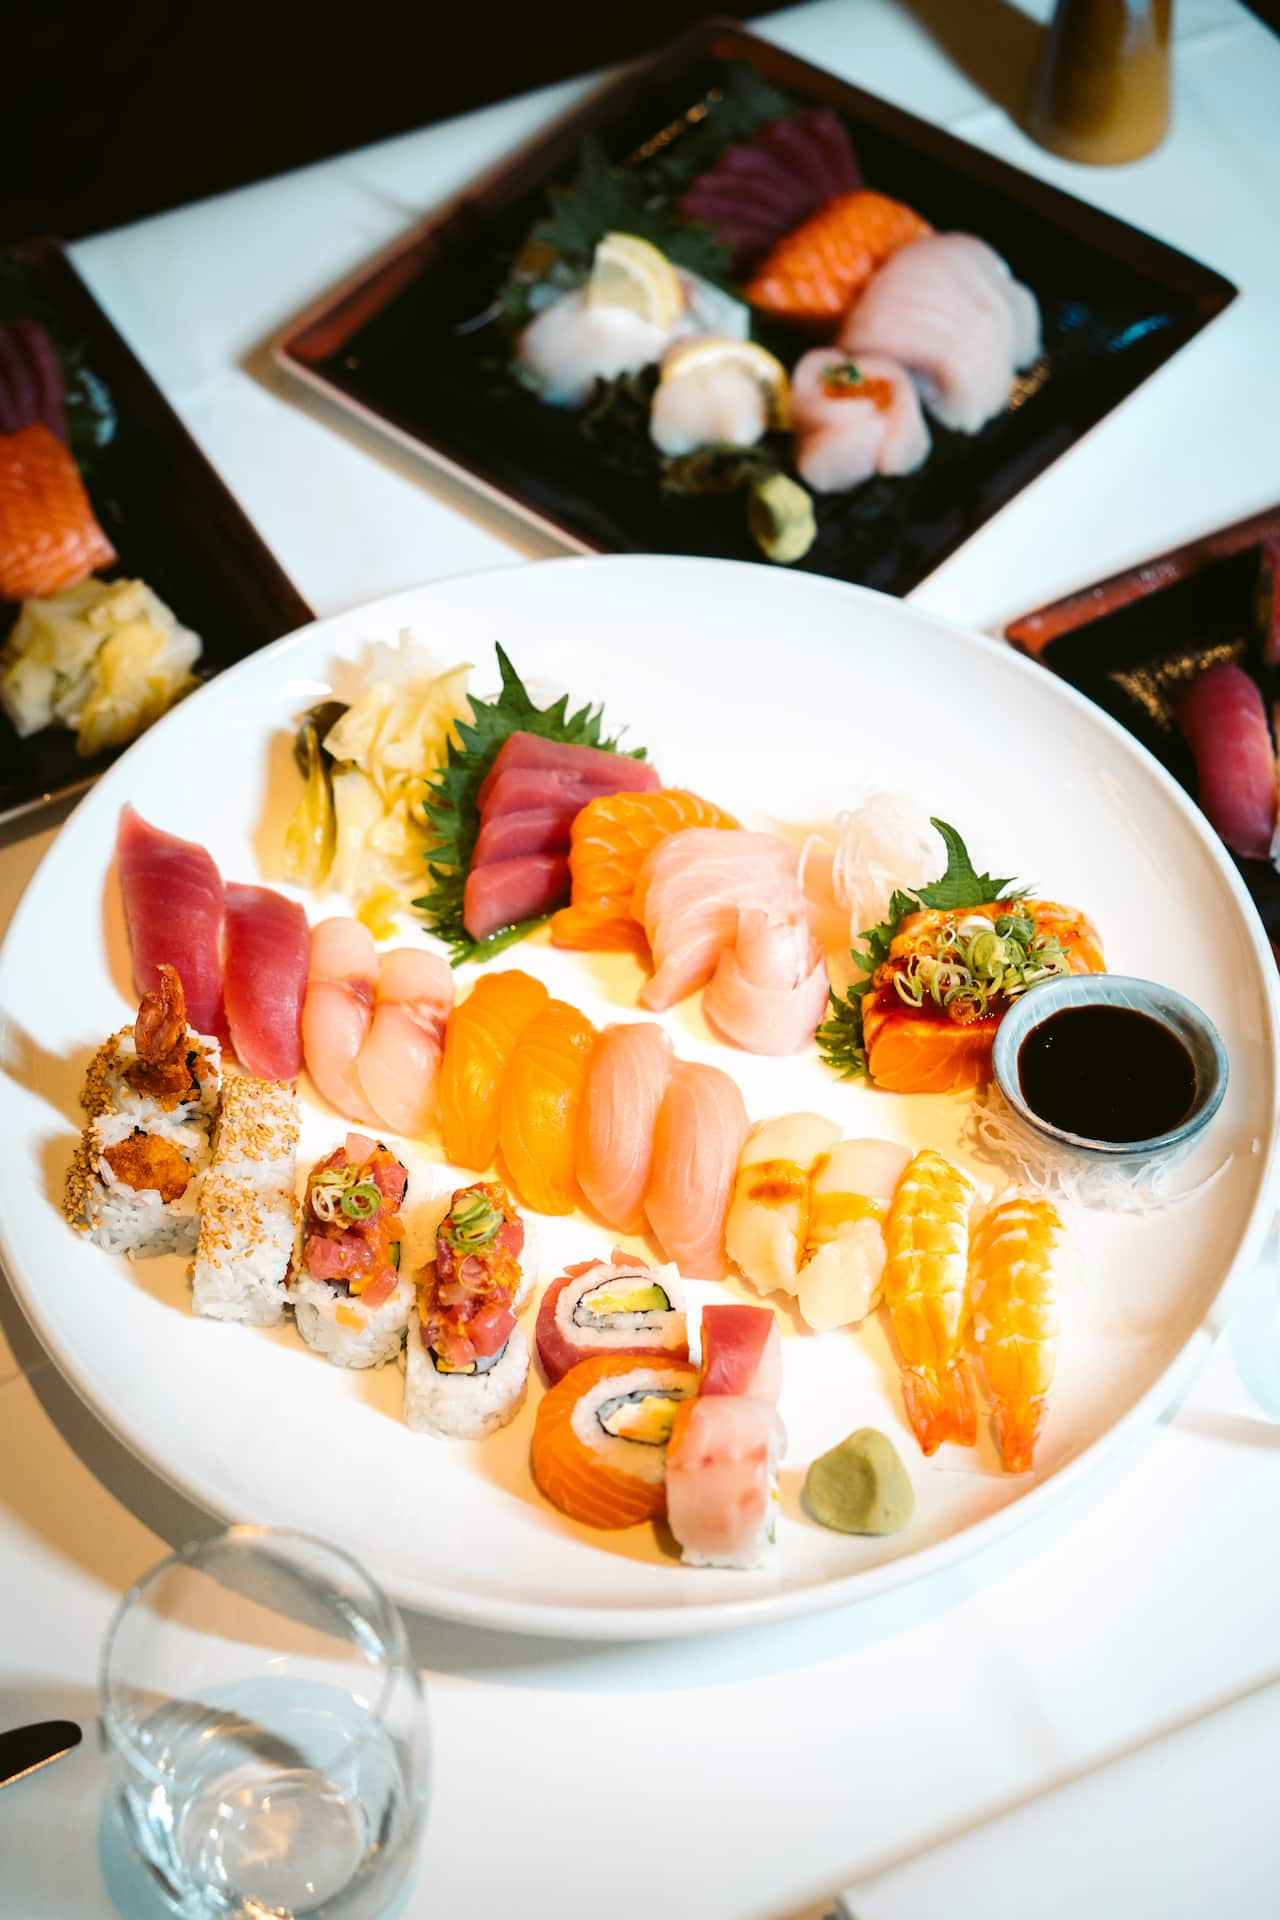 Sushiteller im Vox Restaurant im Grand Hyatt Berlin